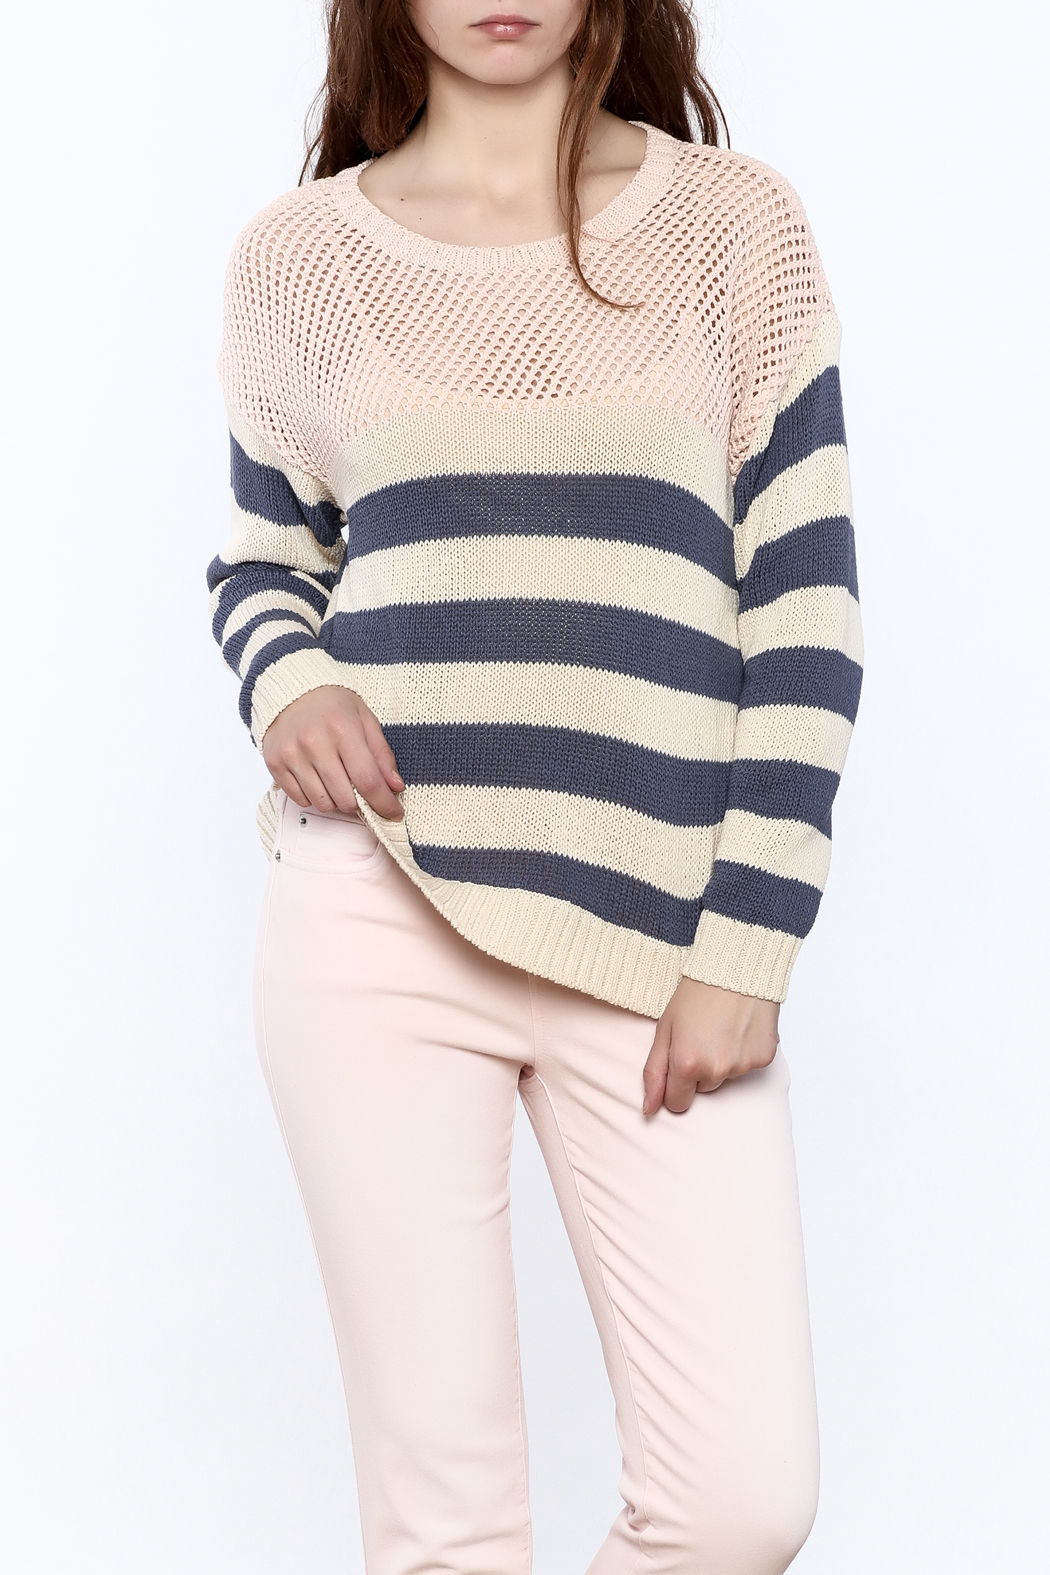 Weekend by Aldo Martins Summer Nautical Sweater - Front Cropped Image